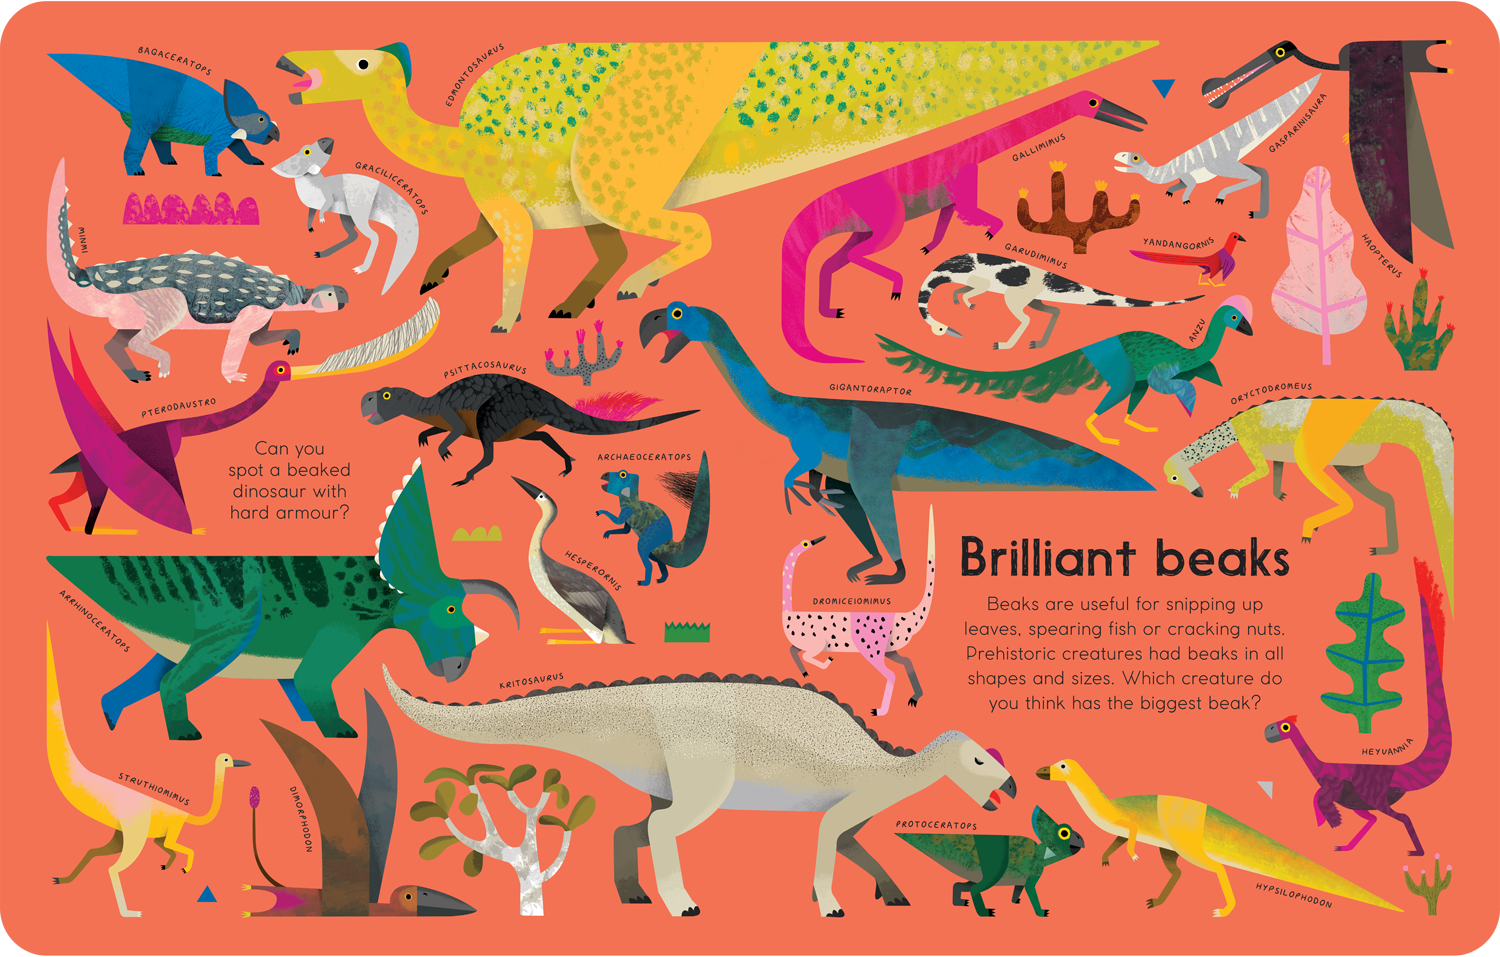 DINOFeature_INSIDE_spreads-6-by-Natasha-Durley.png